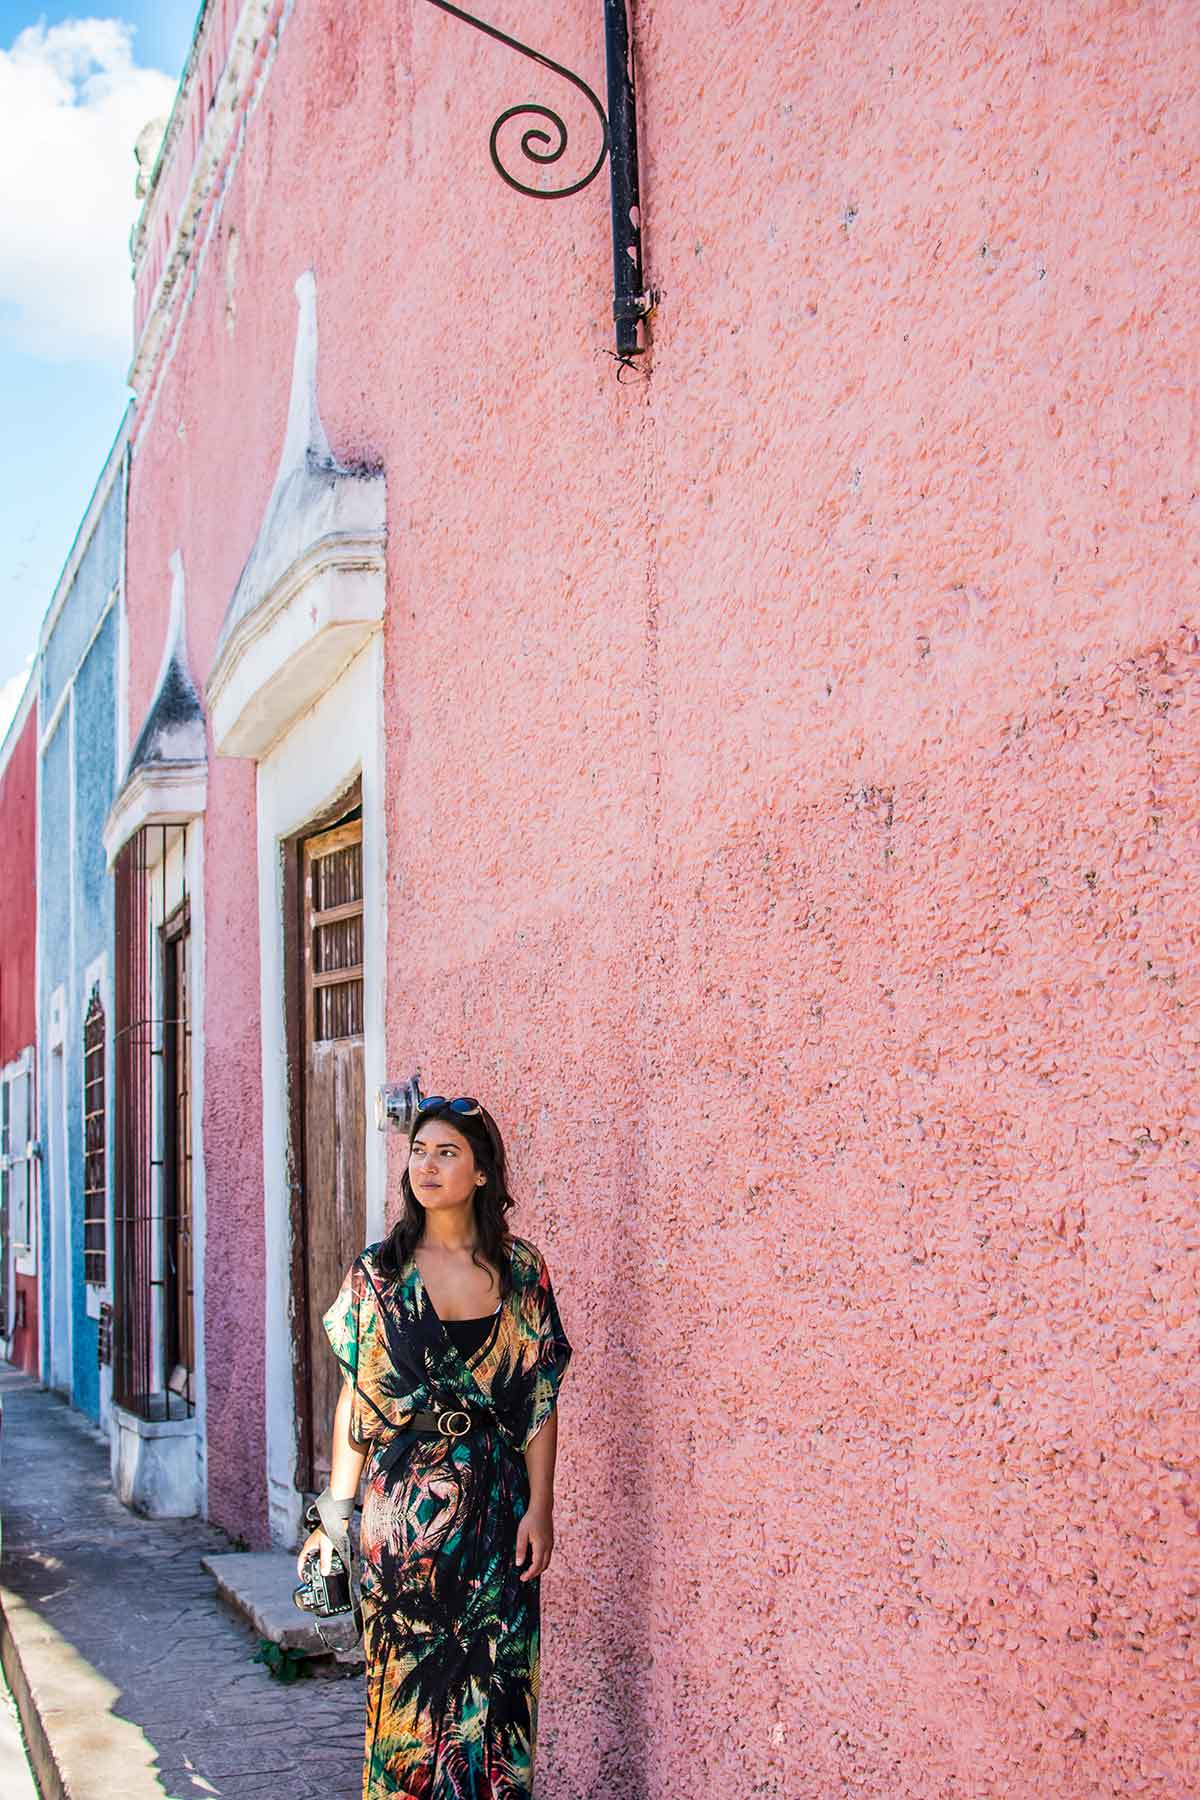 20 EPIC Valladolid Instagram spots for travelling Mexico. Woman walks along side a pink wall of the The multi coloured walls of Calle de los Frailes street